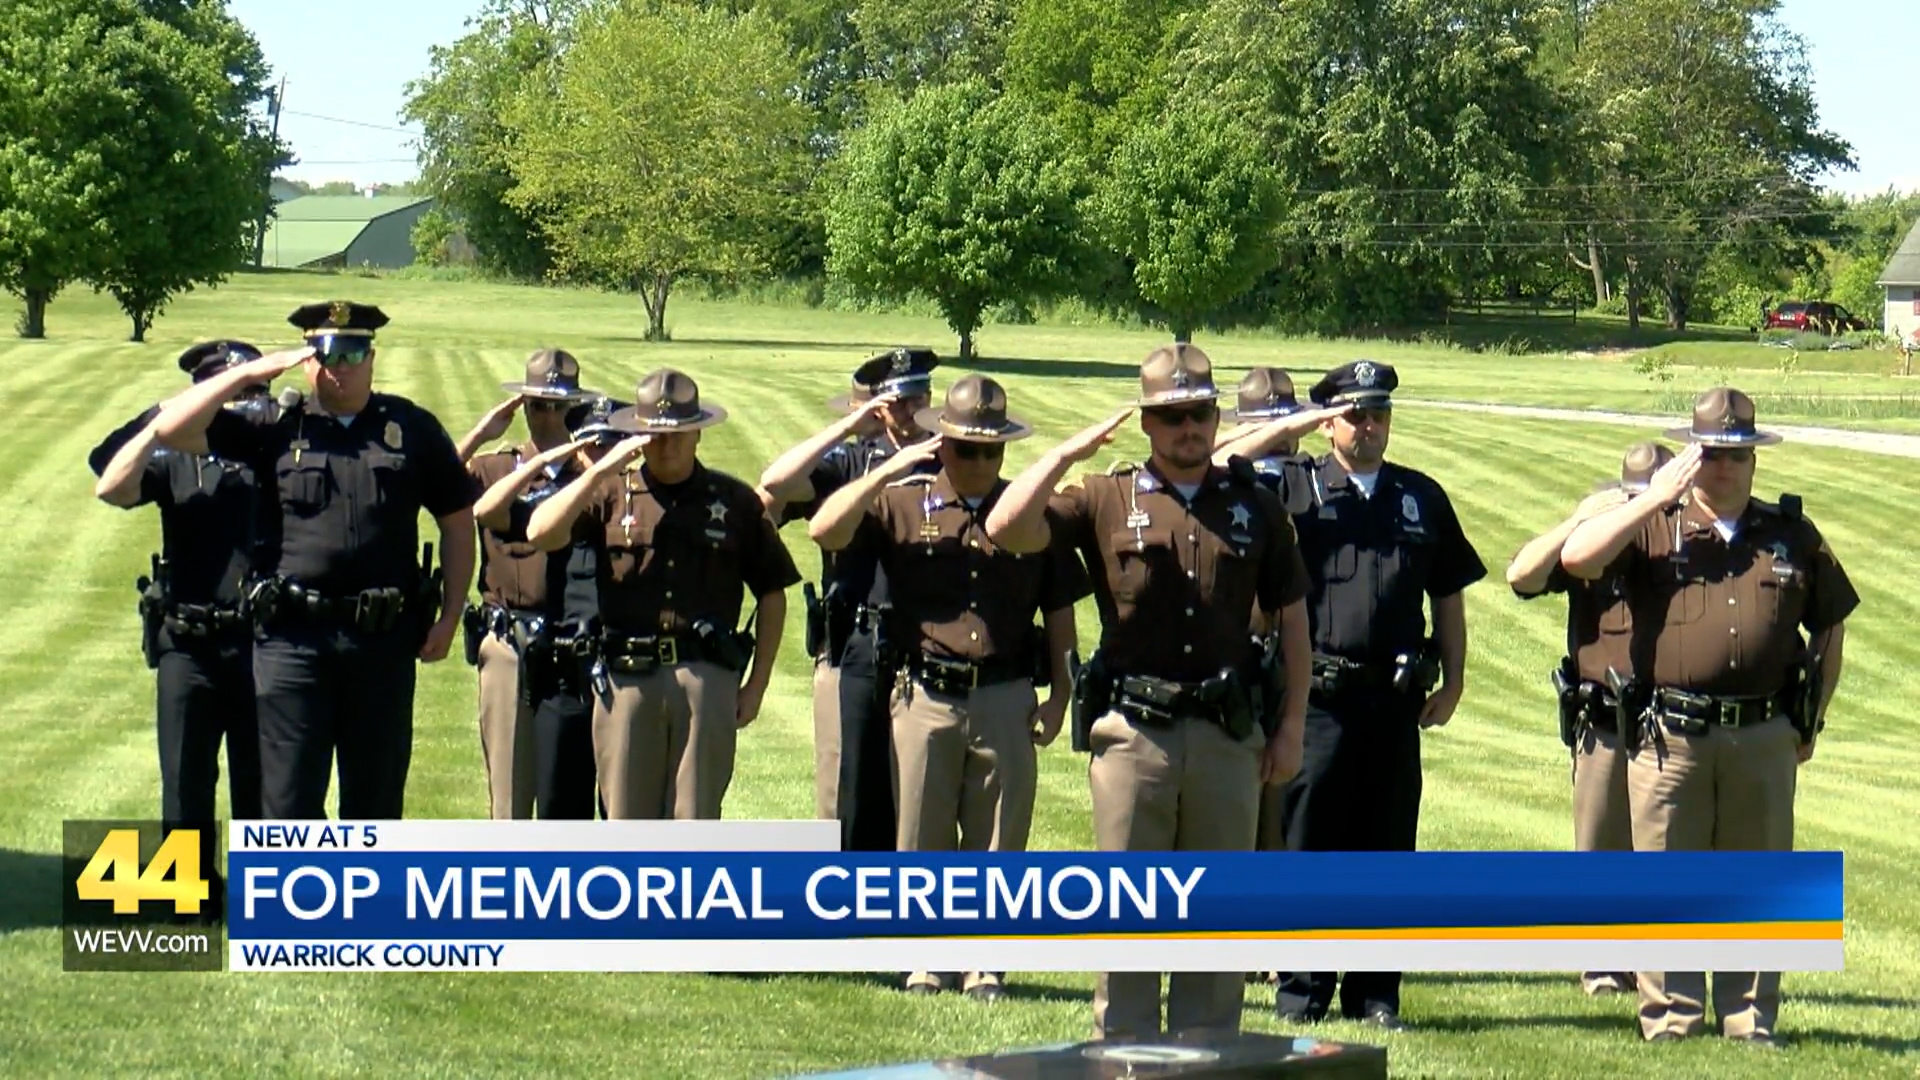 Image for FOP Memorial Ceremony in Warrick County